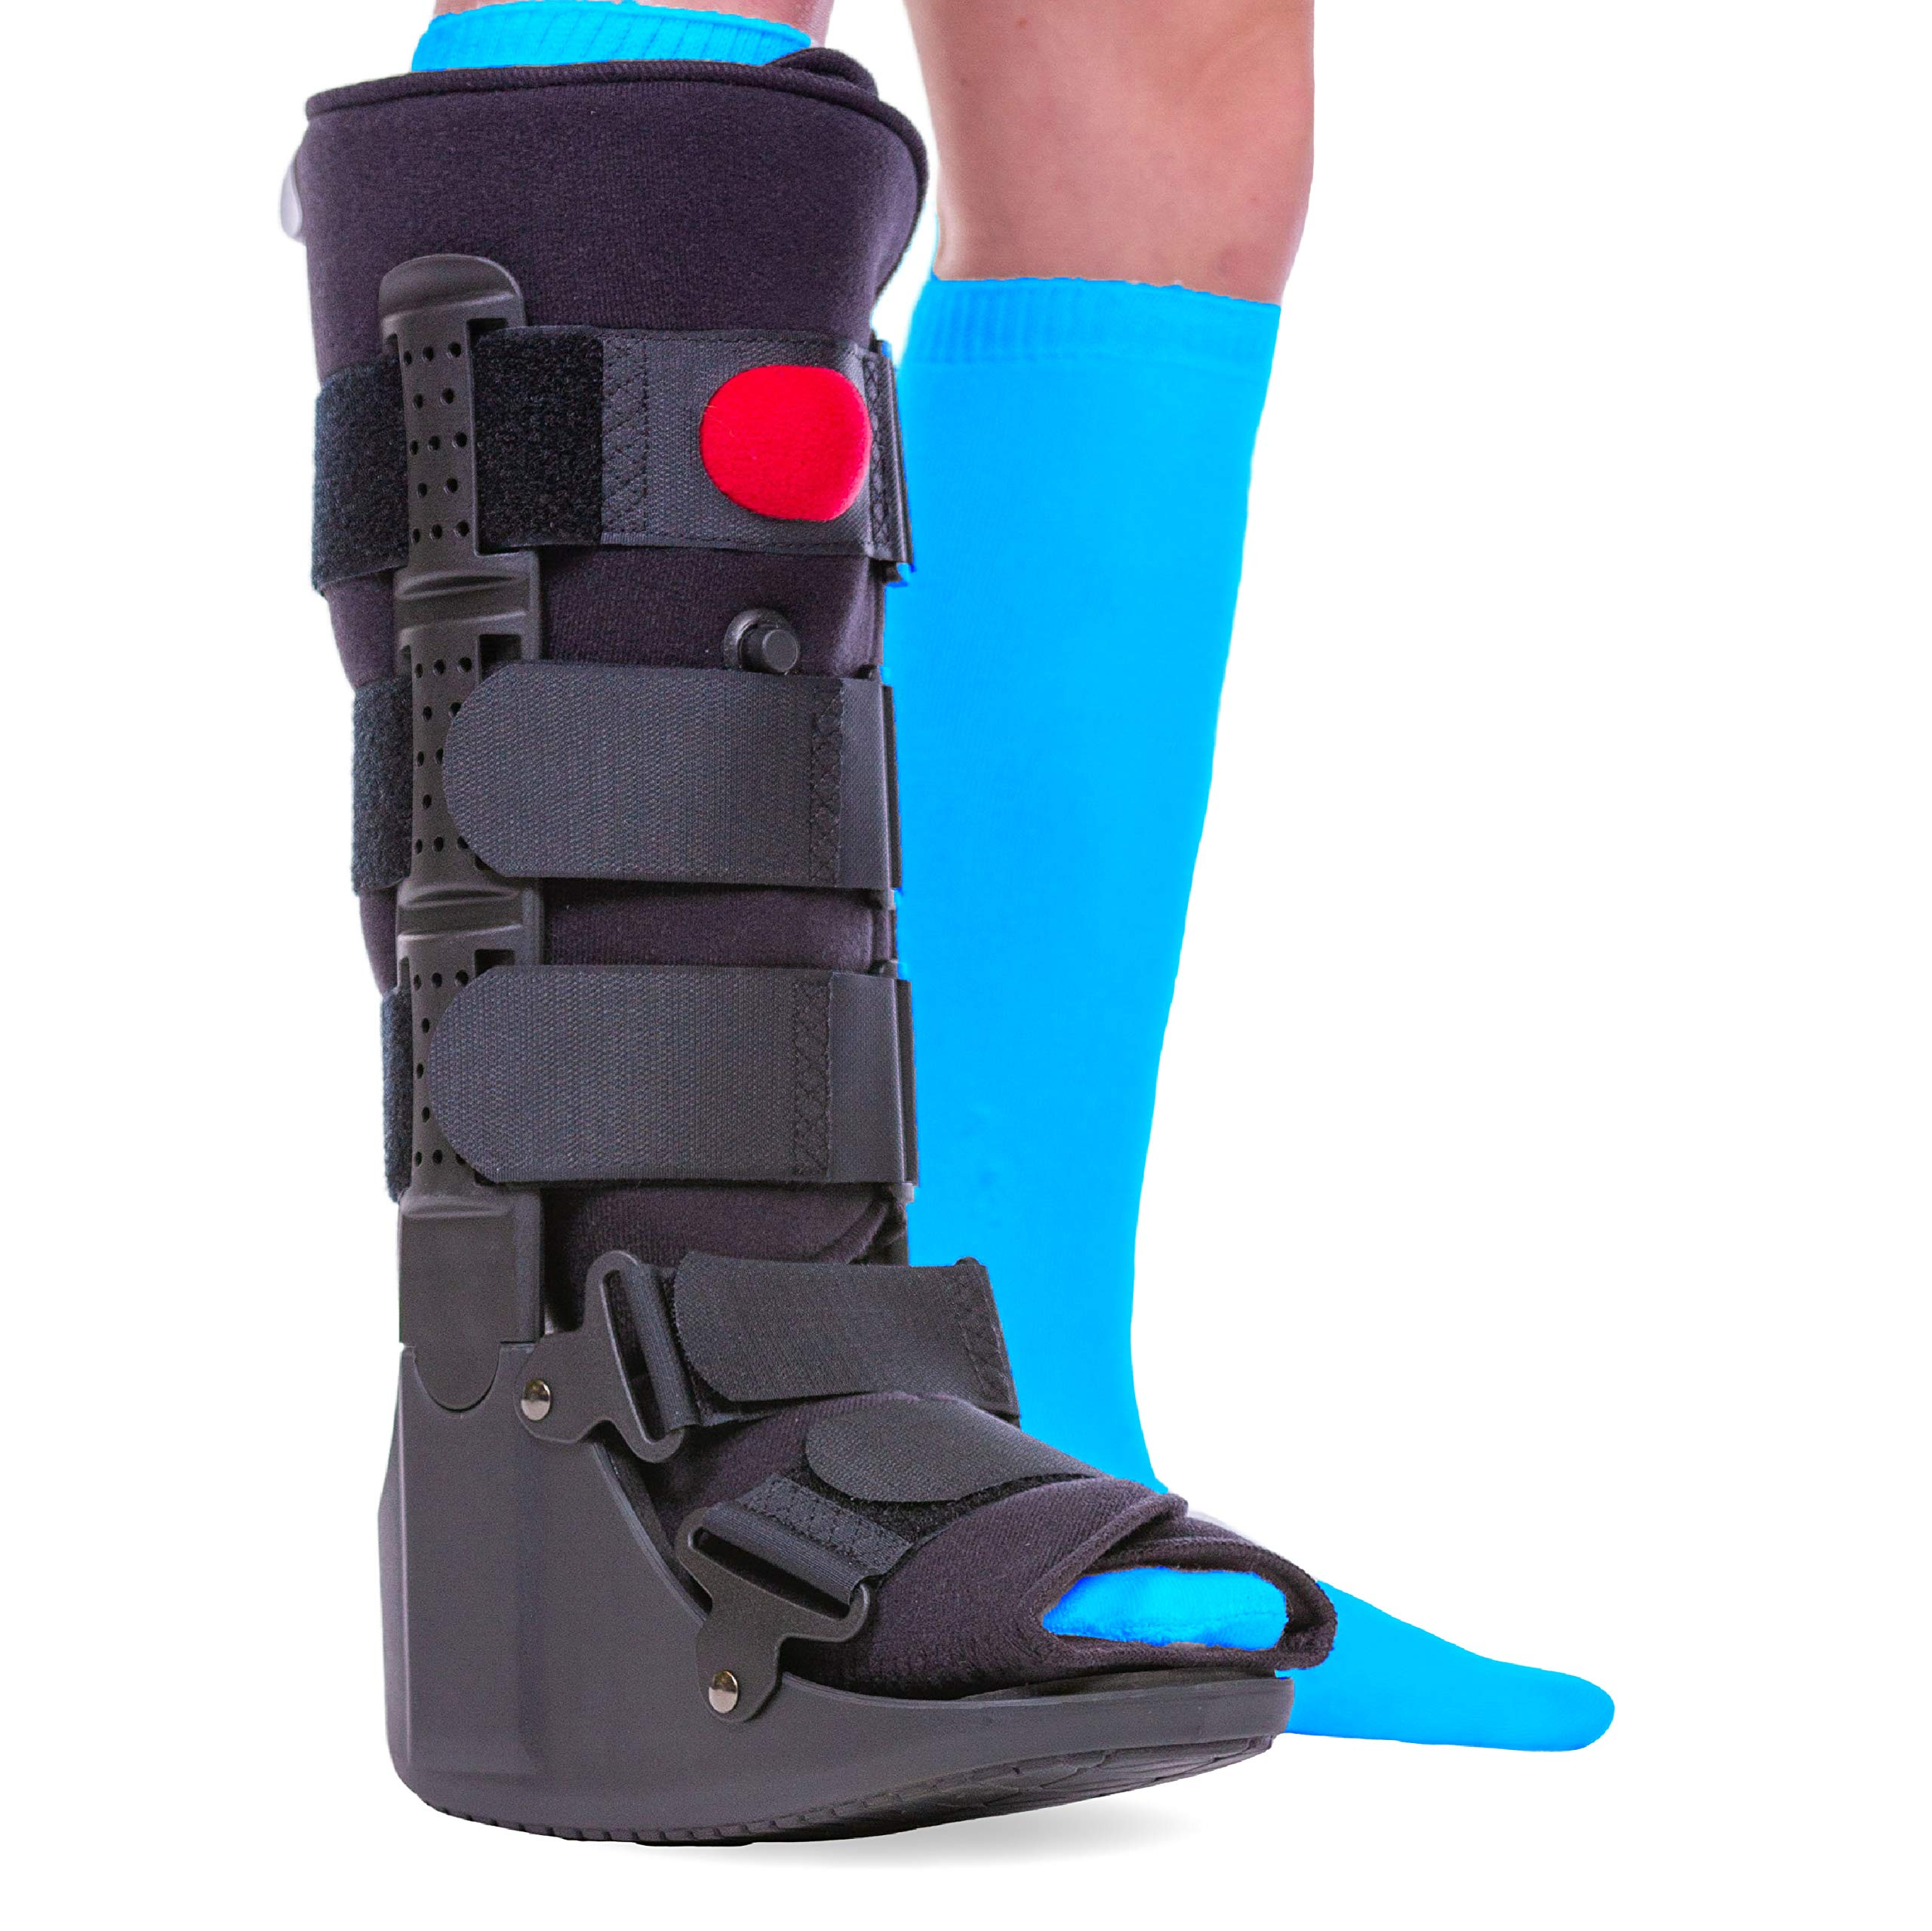 BraceAbility Tall Pneumatic Walking Boot   Orthopedic CAM Air Walker & Inflatable Surgical Leg Cast for Broken Foot, Sprained Ankle, Fractures or Achilles Surgery Recovery (Medium)